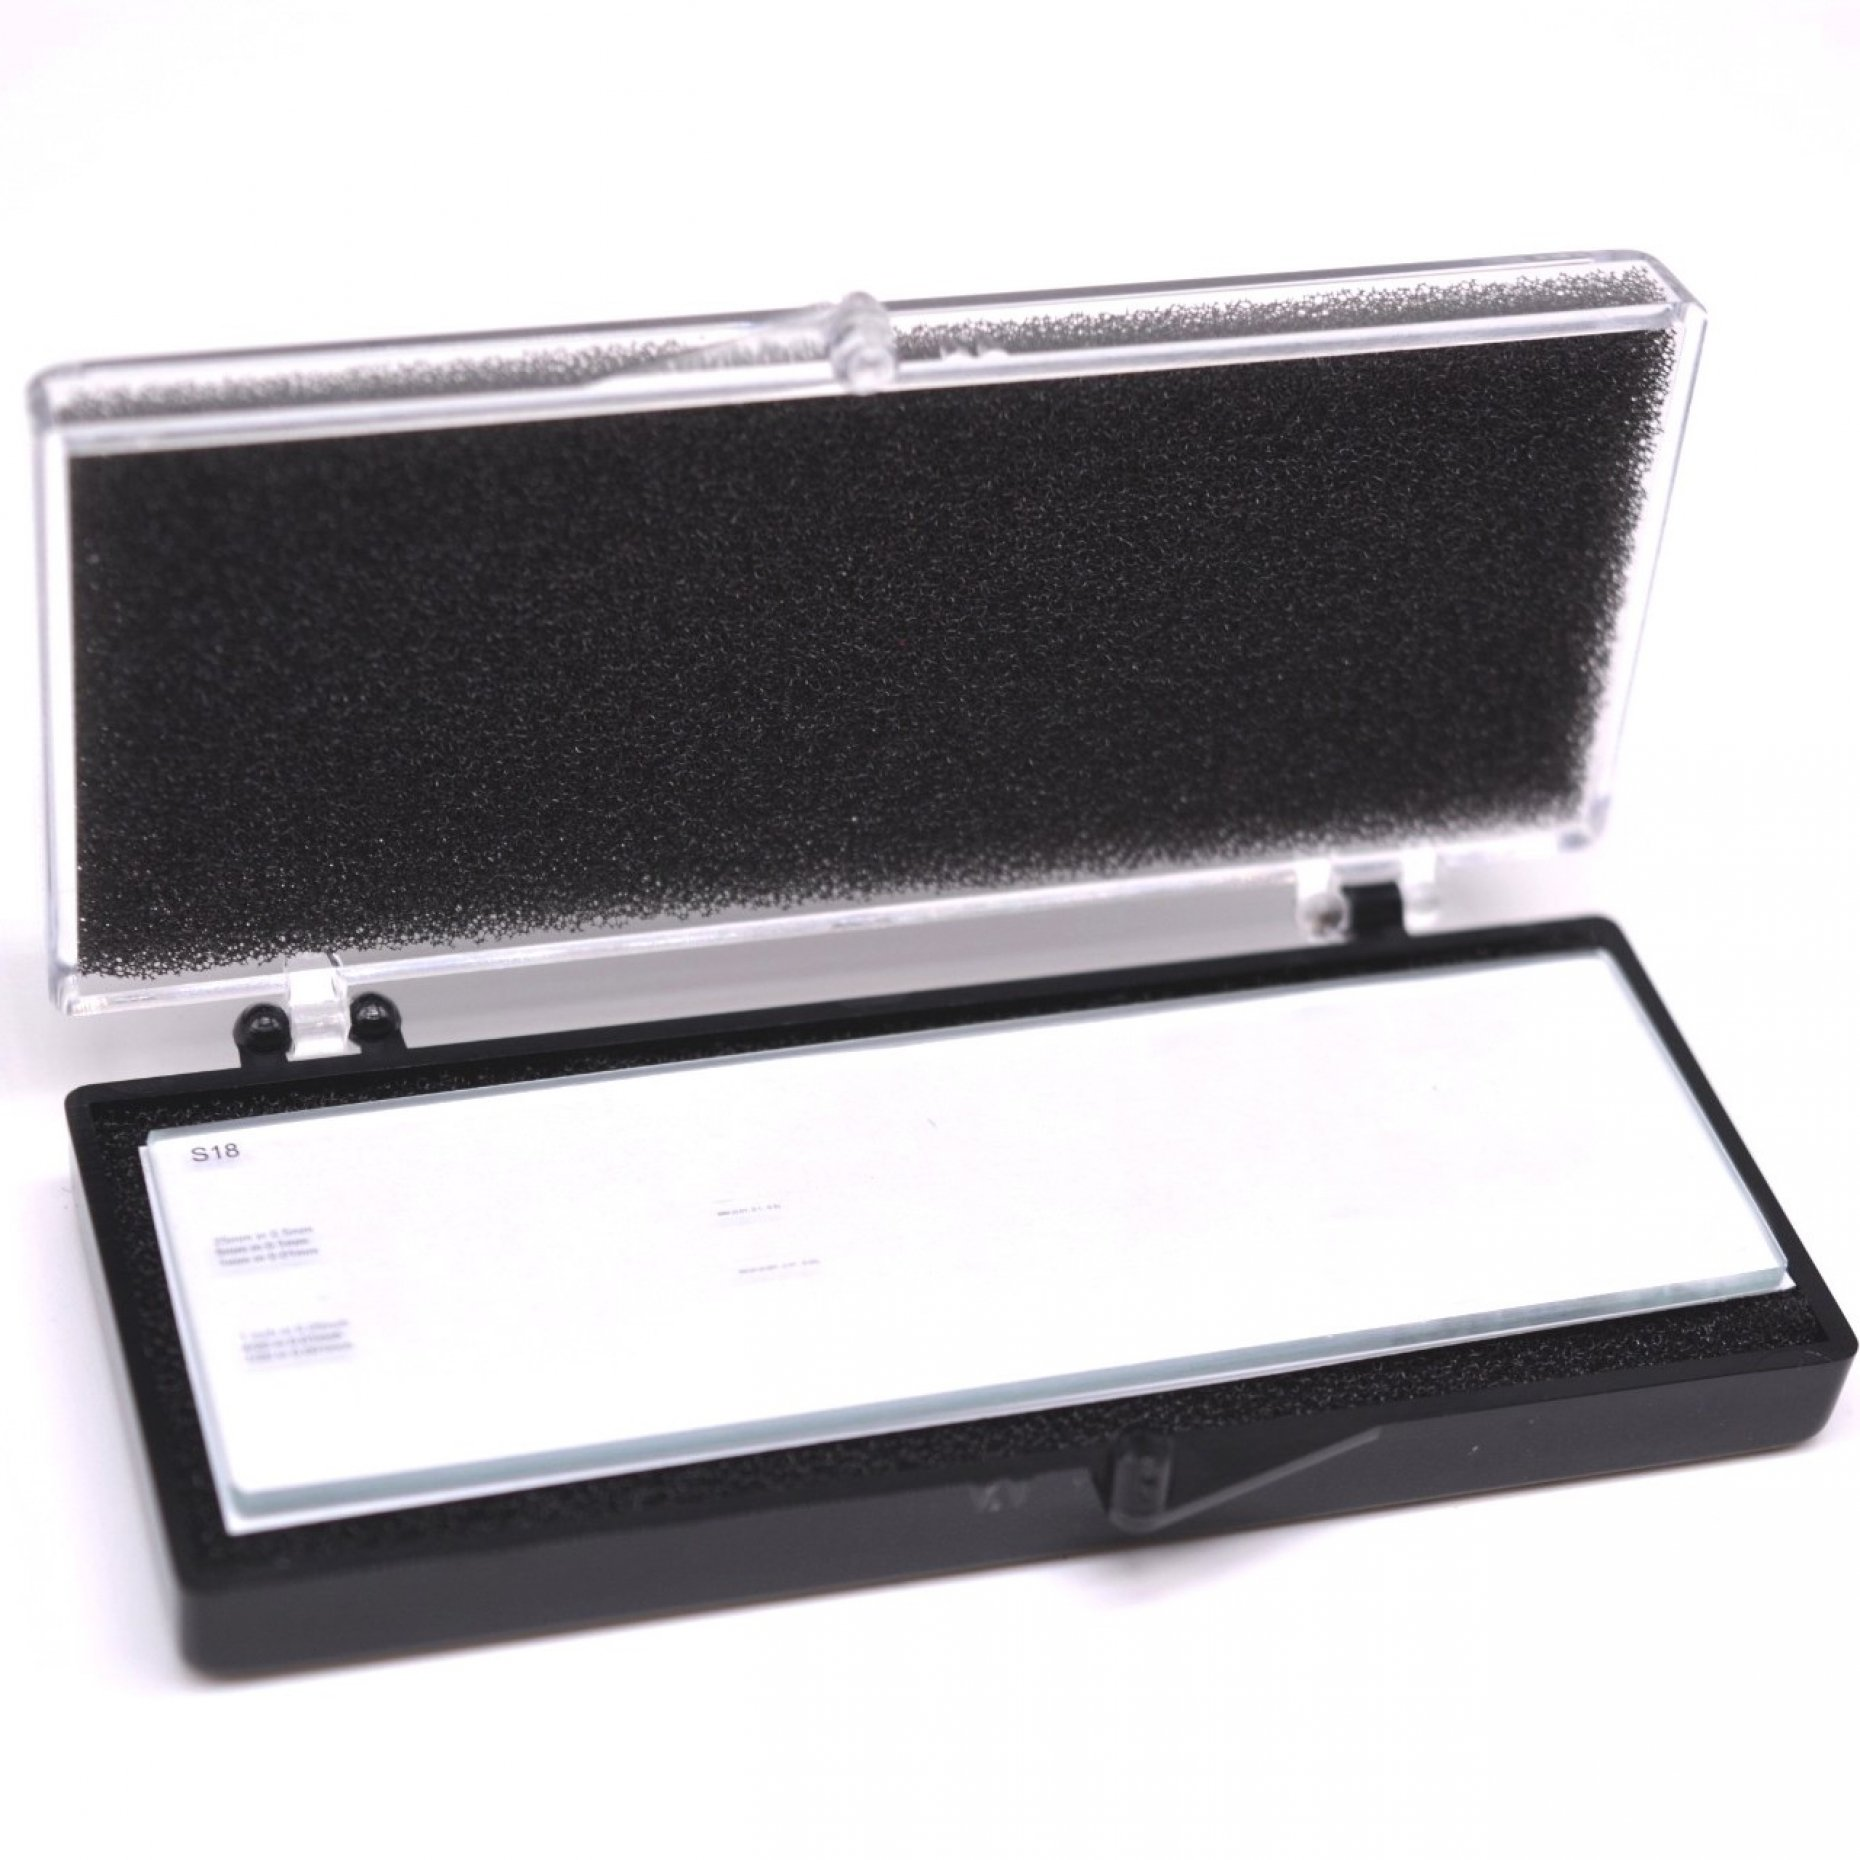 S18 Stage Micrometer Double Graduated Metric/Imperial 25mm and 1'' scales Product